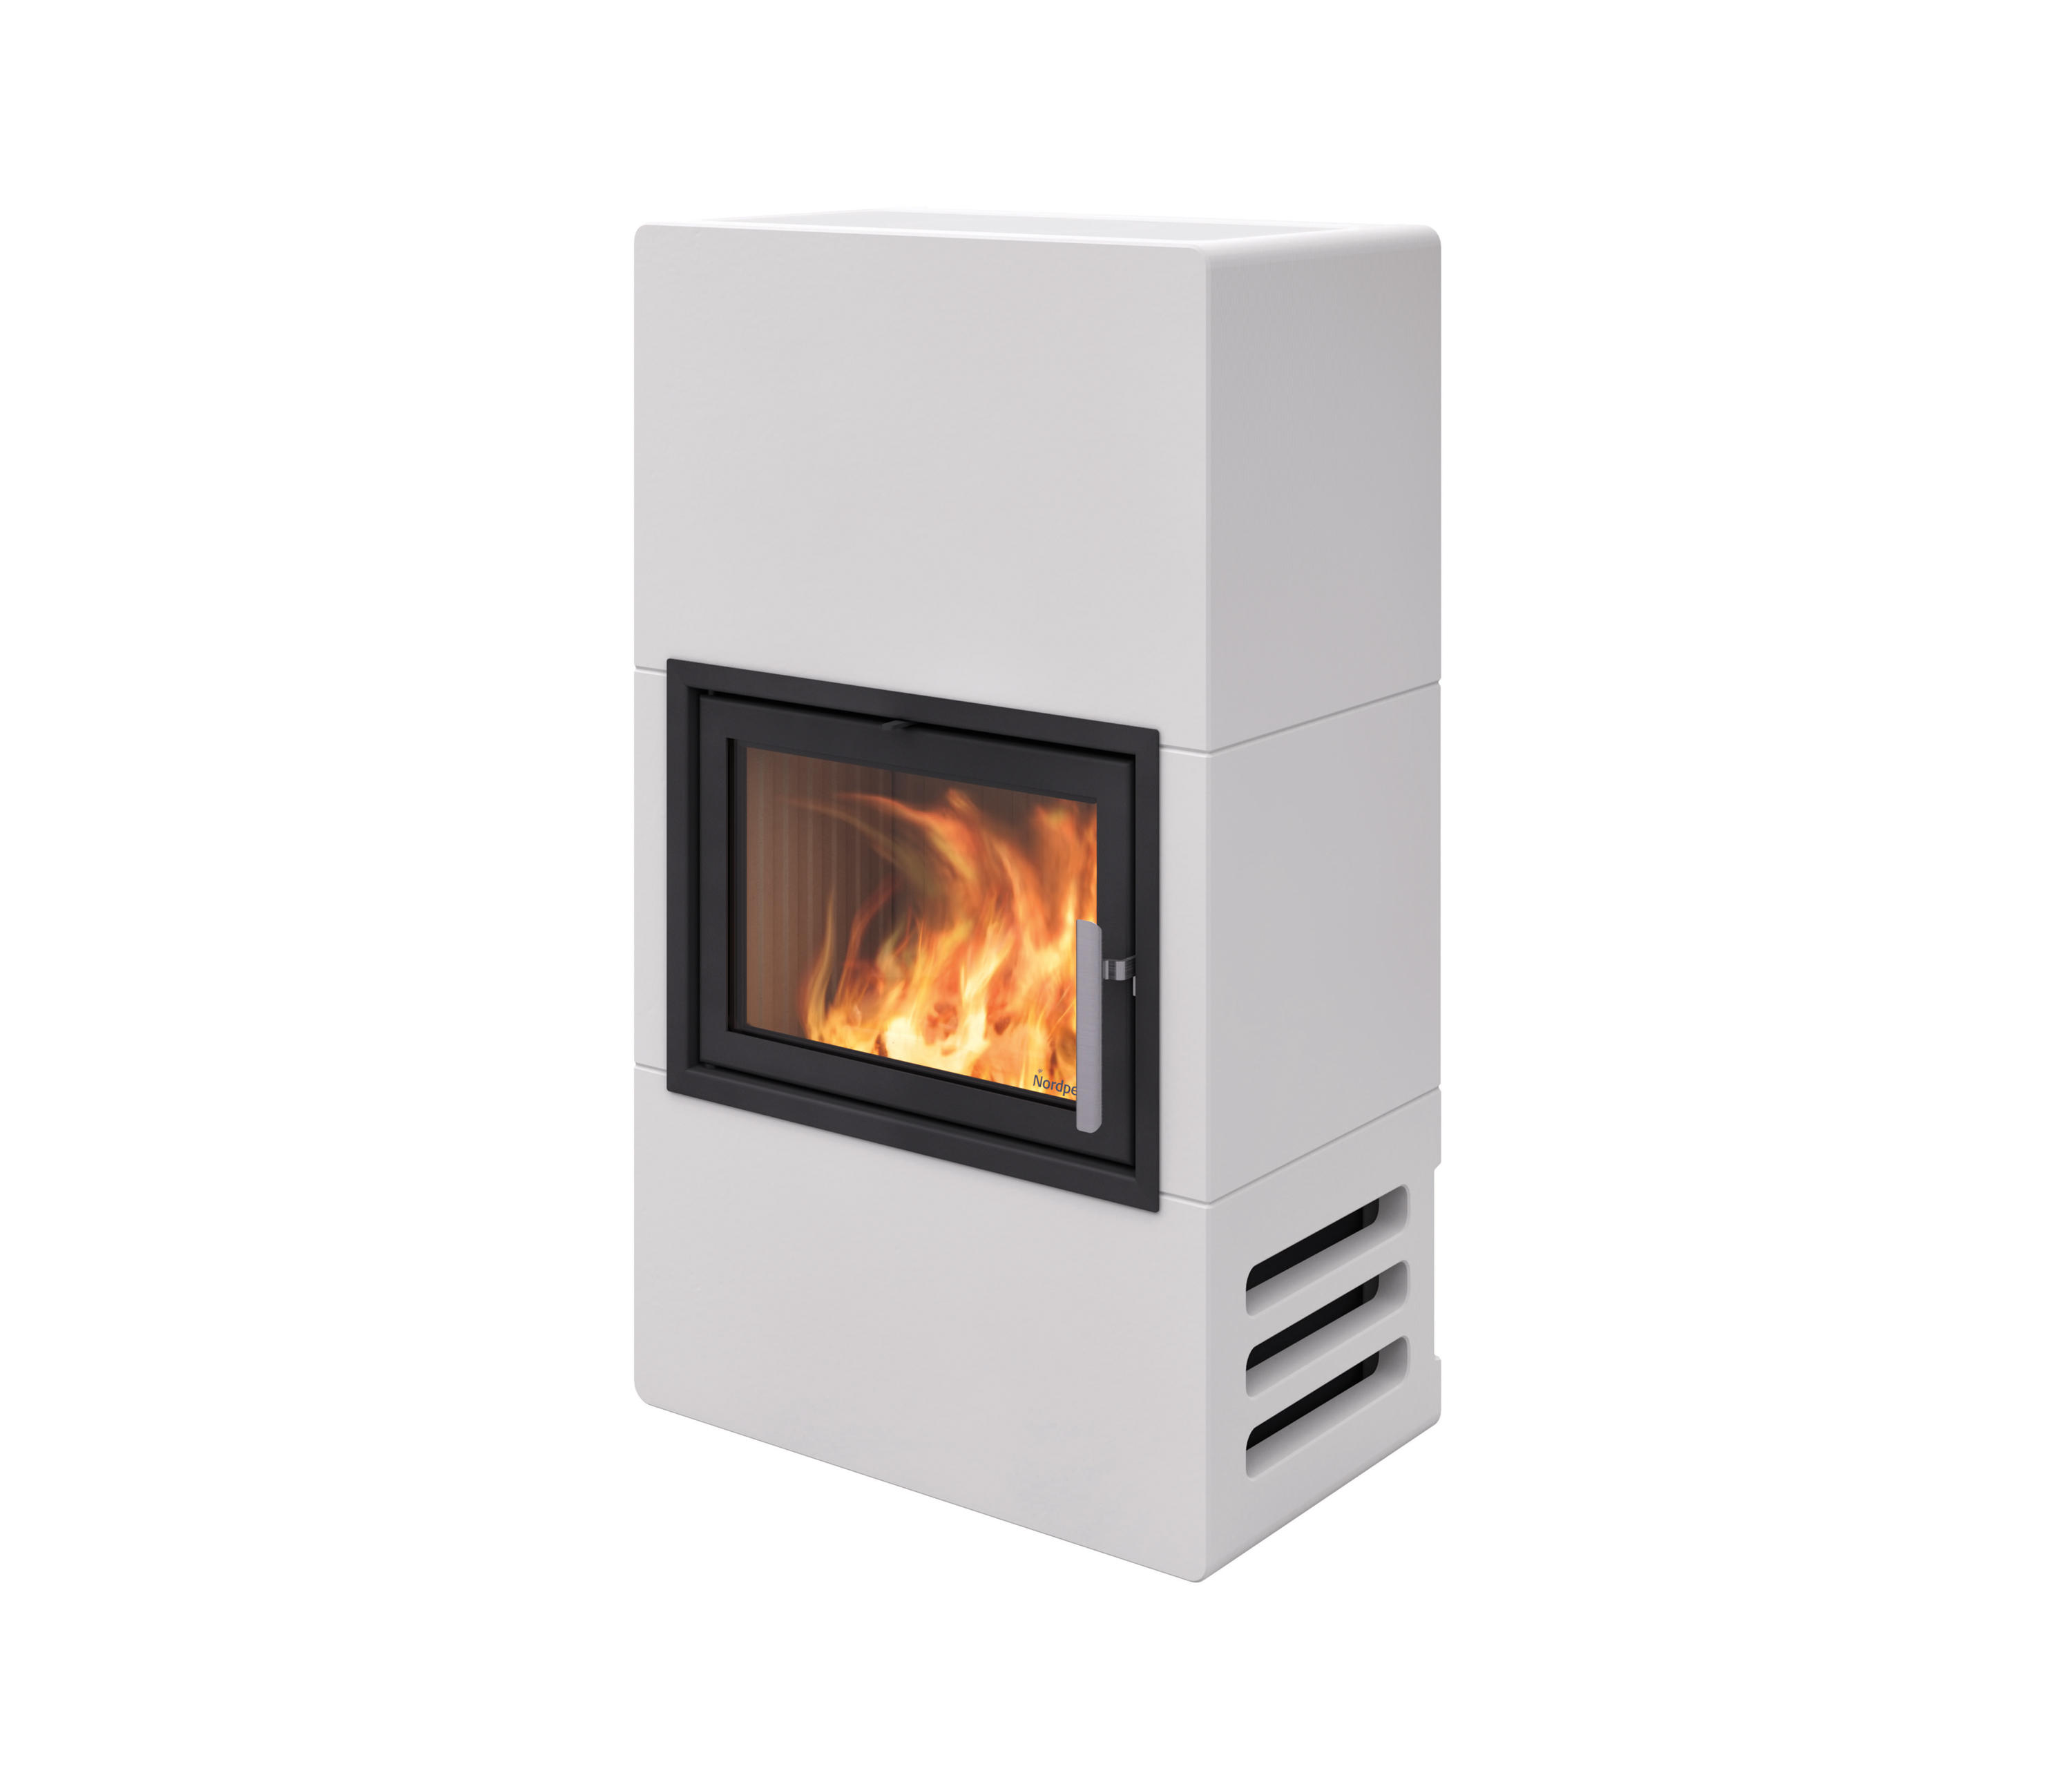 STOCKHOLM - Wood burning stoves from Nordpeis | Architonic